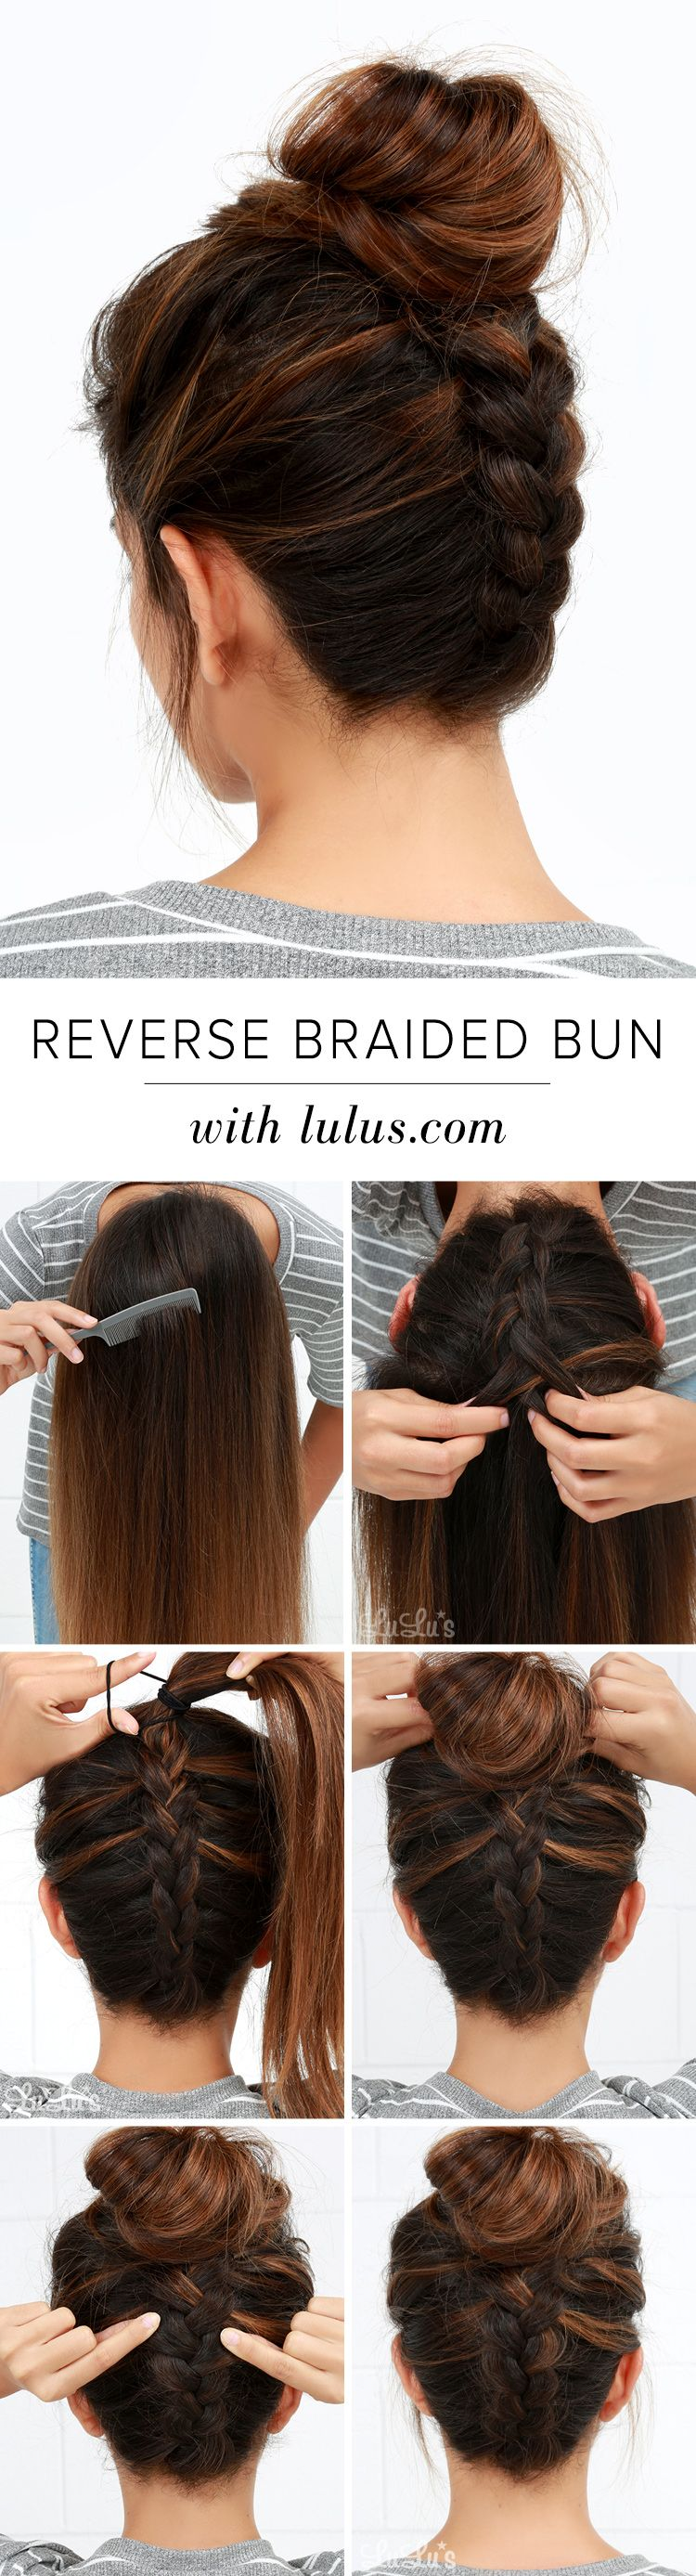 diy messy buns that only take minutes | pinterest | reverse braid